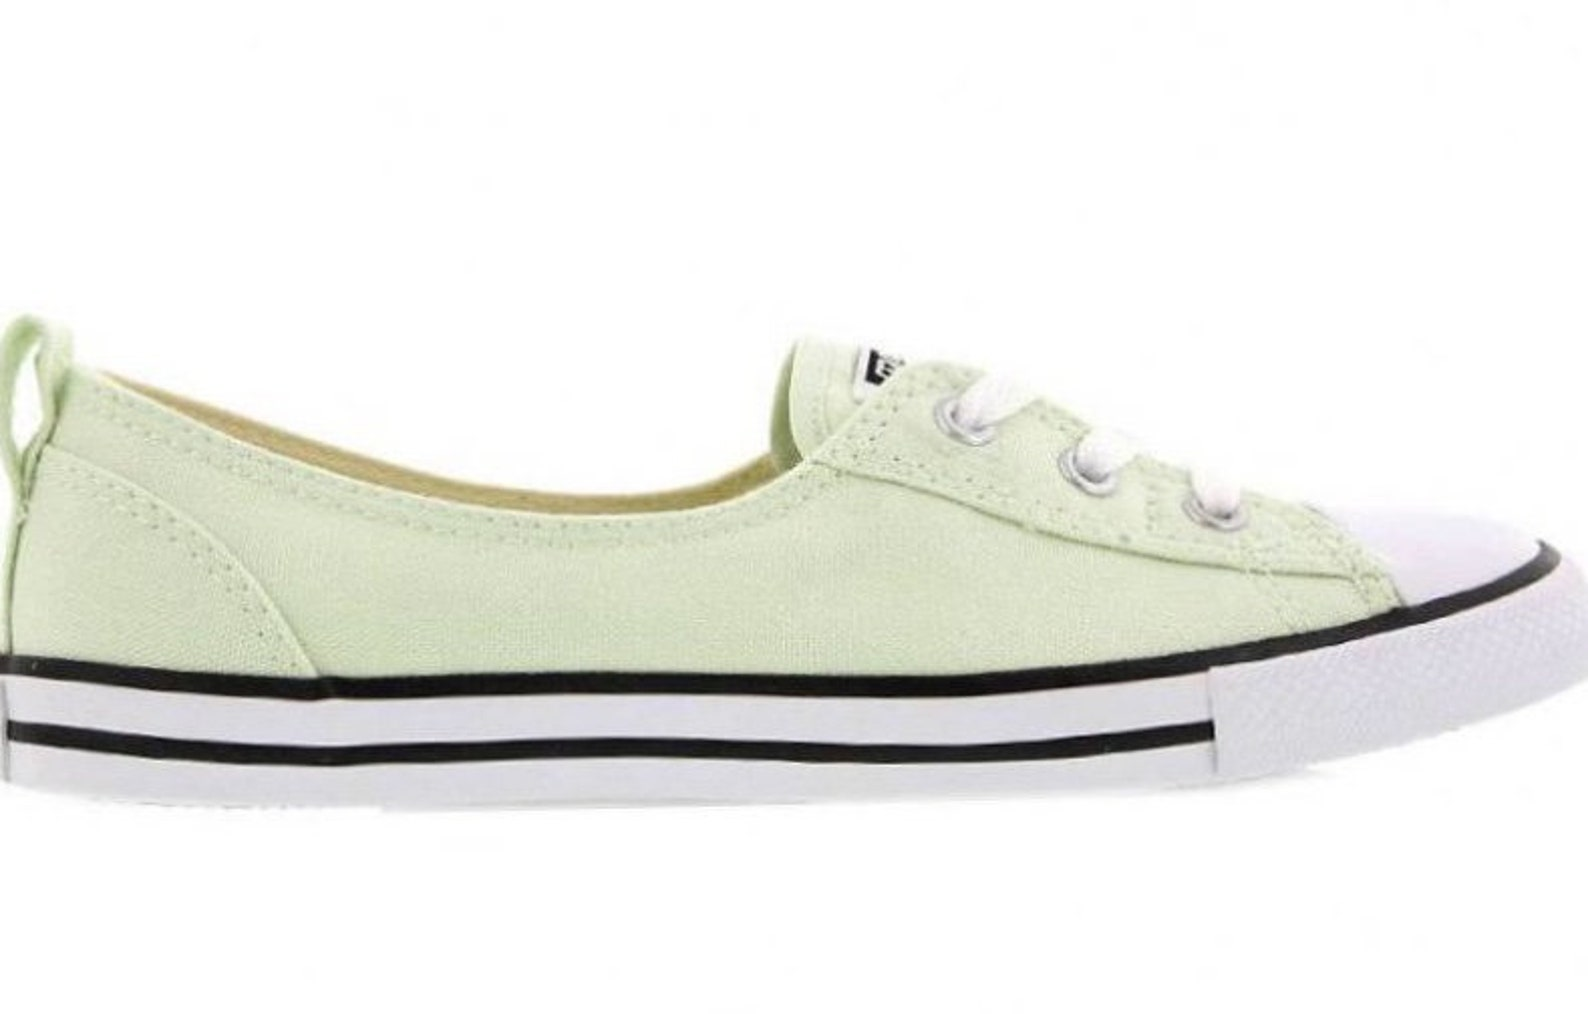 mint green converse slip on pistachio low ballet flat wedding lace w/ swarovski crystal chuck taylor rhinestone all star bride s